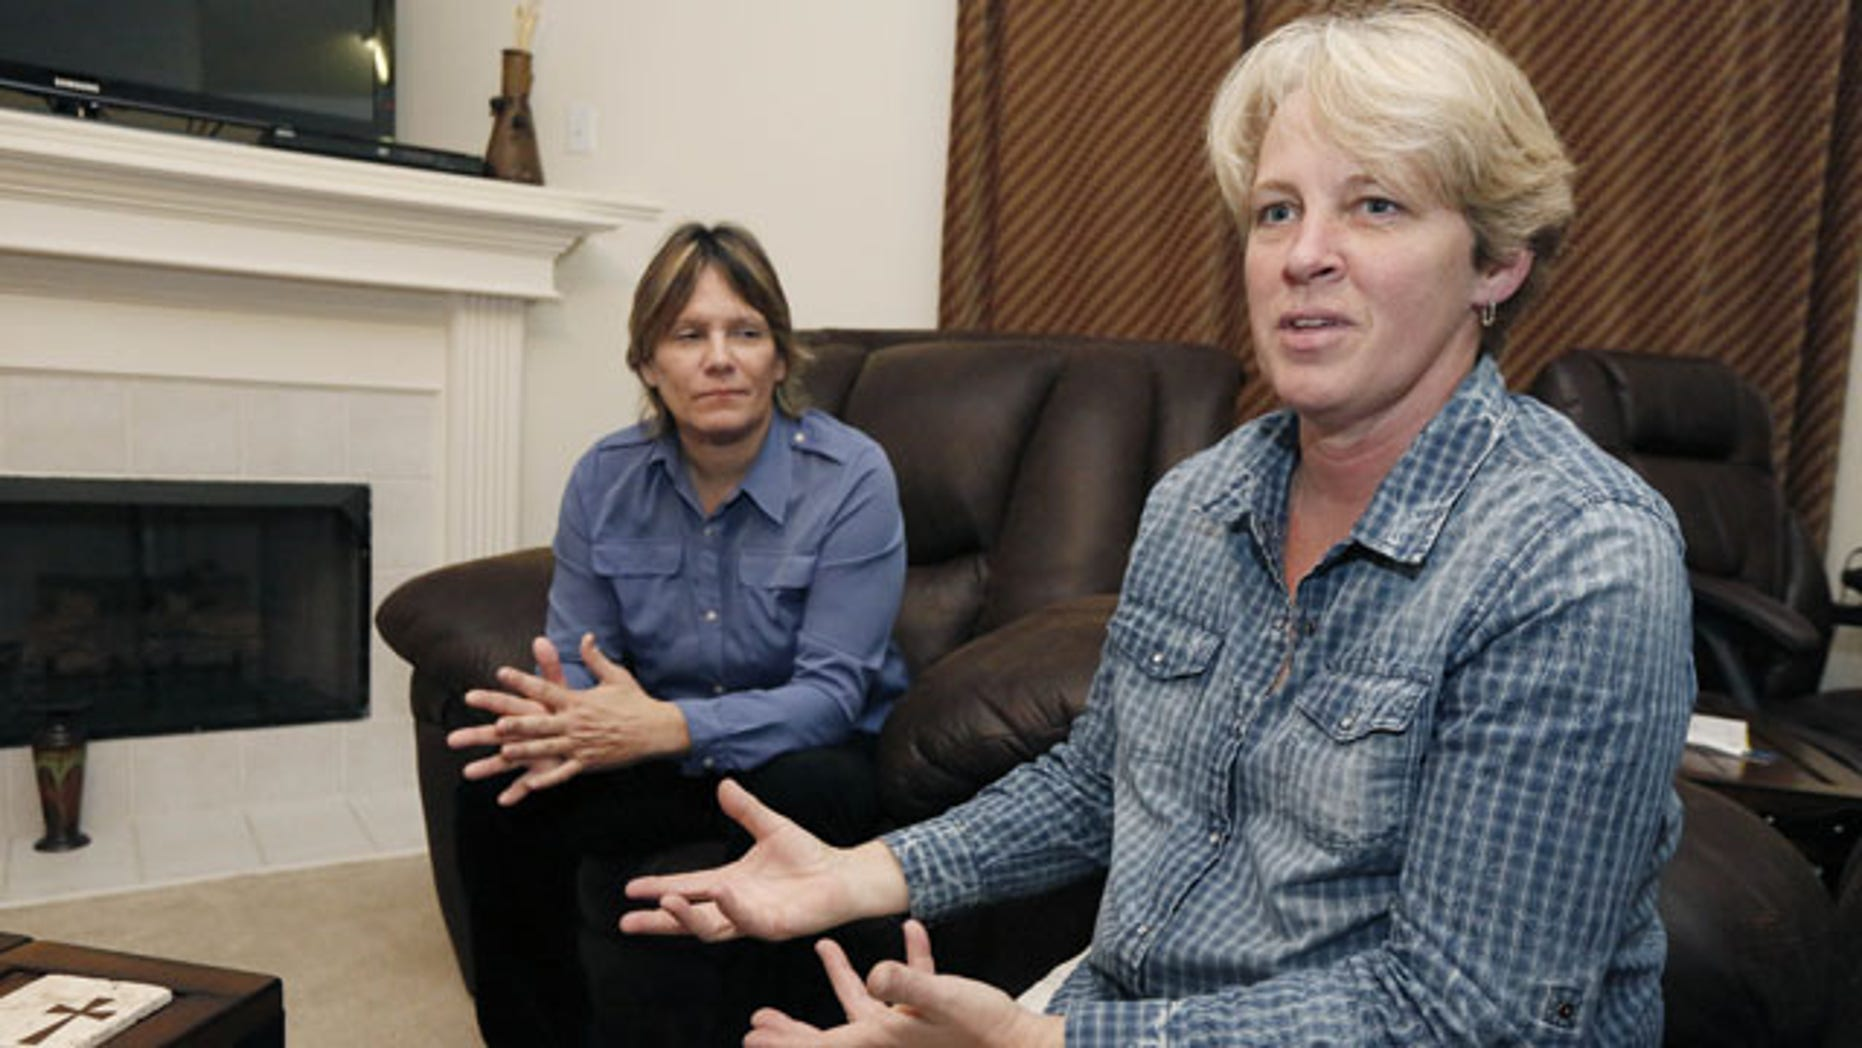 November 5, 2013: Dawn Jefferies, right, speaks in Hernando, Miss., about the efforts Lauren Czekala-Chatham, left, has taken to get the state to recognize a same sex marriage performed in California, so she can now divorce that same partner she lived with as a couple in DeSoto County, until they separated in 2010. Jefferies is Czekala-Chatham's new partner.